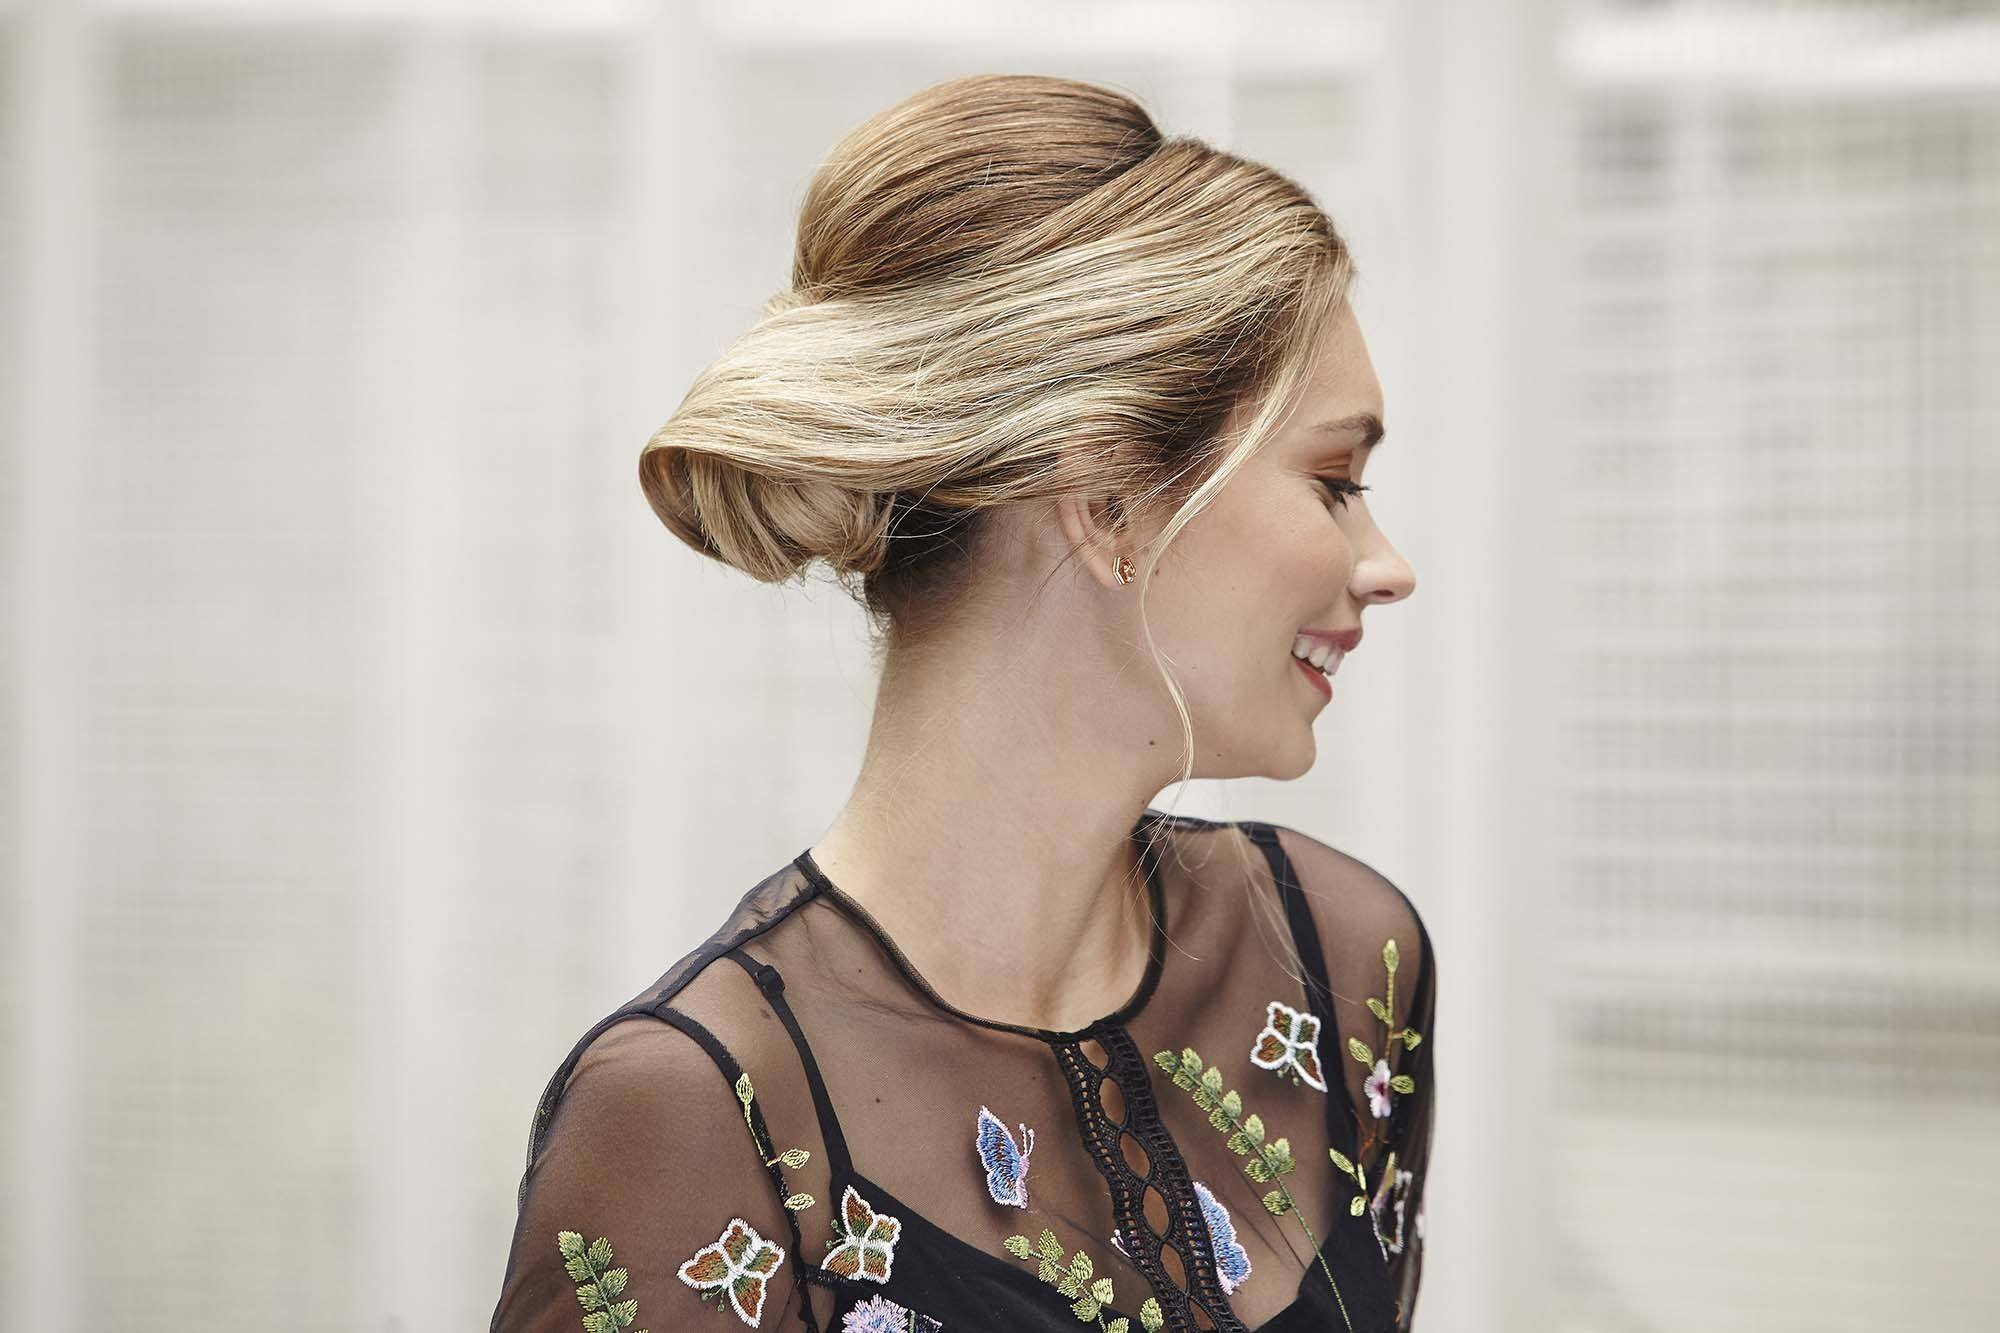 Flower updo hairstyles: 12 Stylish ways to rock the look for any ...